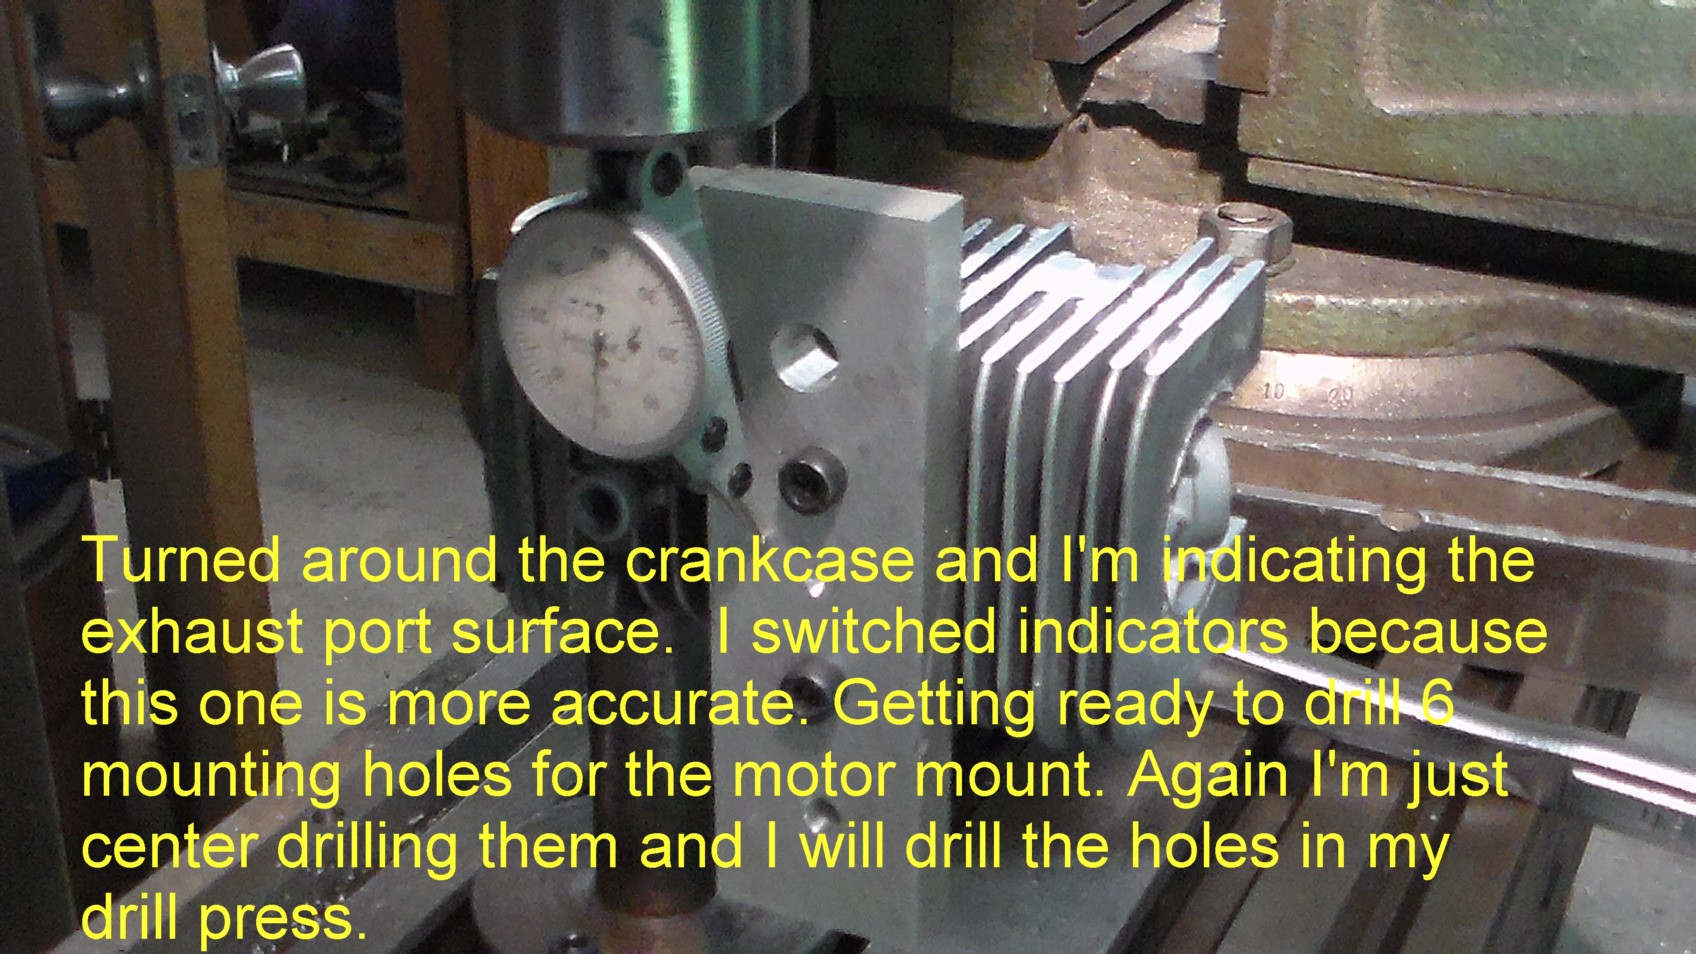 Click image for larger version  Name:Crankcase18.jpg Views:127 Size:435.3 KB ID:2195604